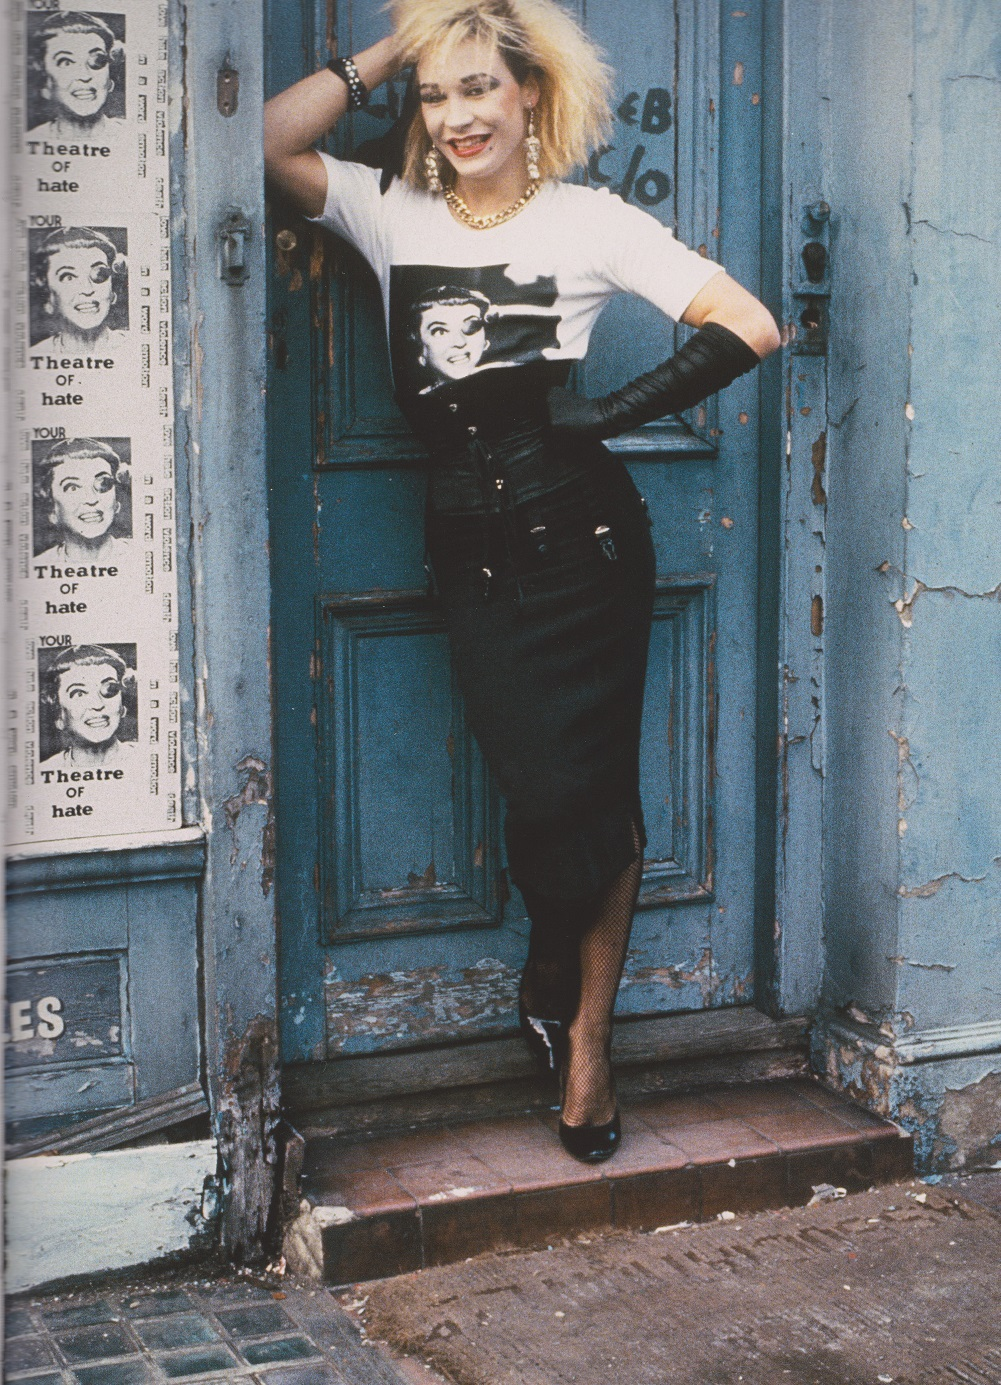 Derek Ridgers' London Youth, Marilyn outside Caburton Street squat, 1980